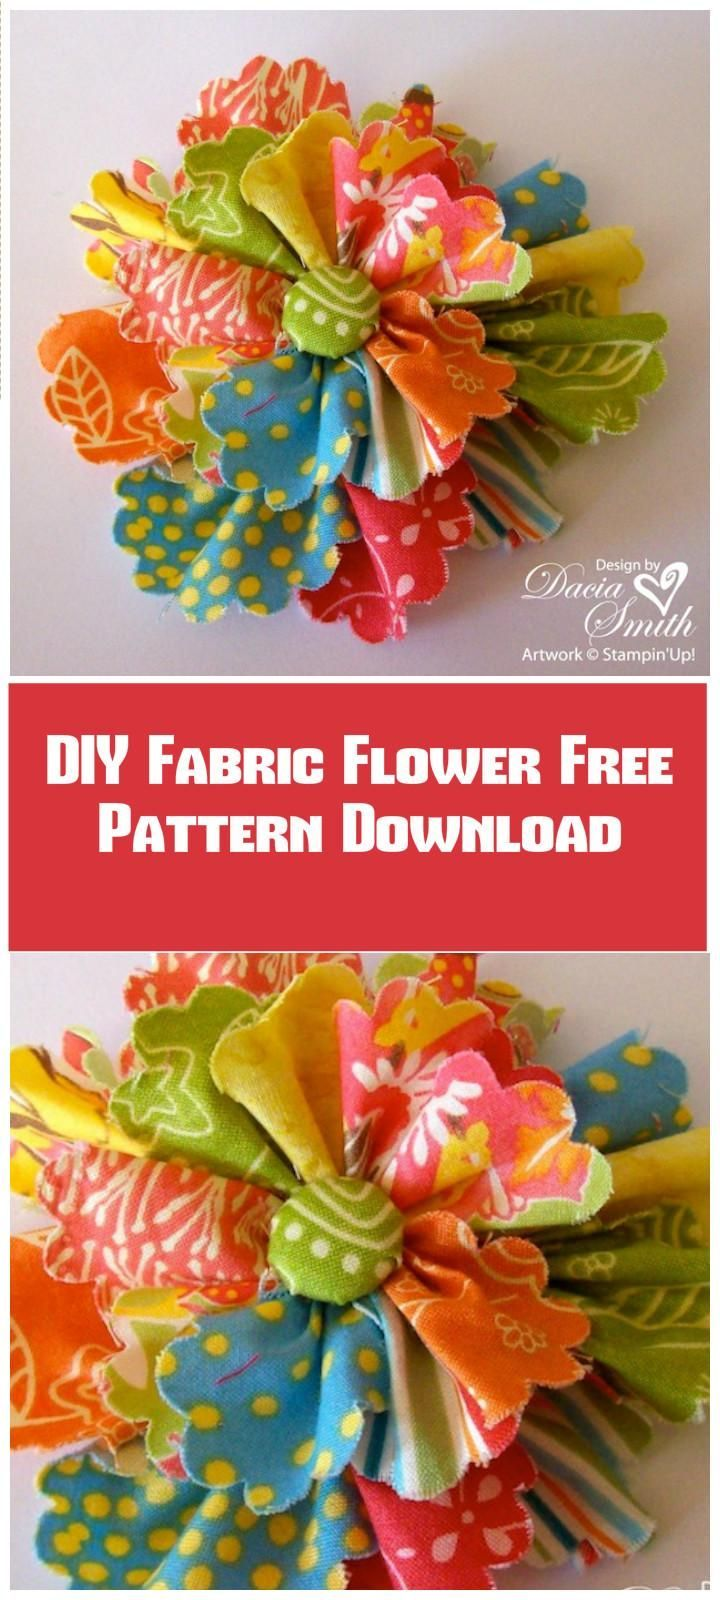 50 Easy Fabric Flowers Tutorial - Make Your Own Fabric Flowers - Page 10 of 10 - DIY & Crafts